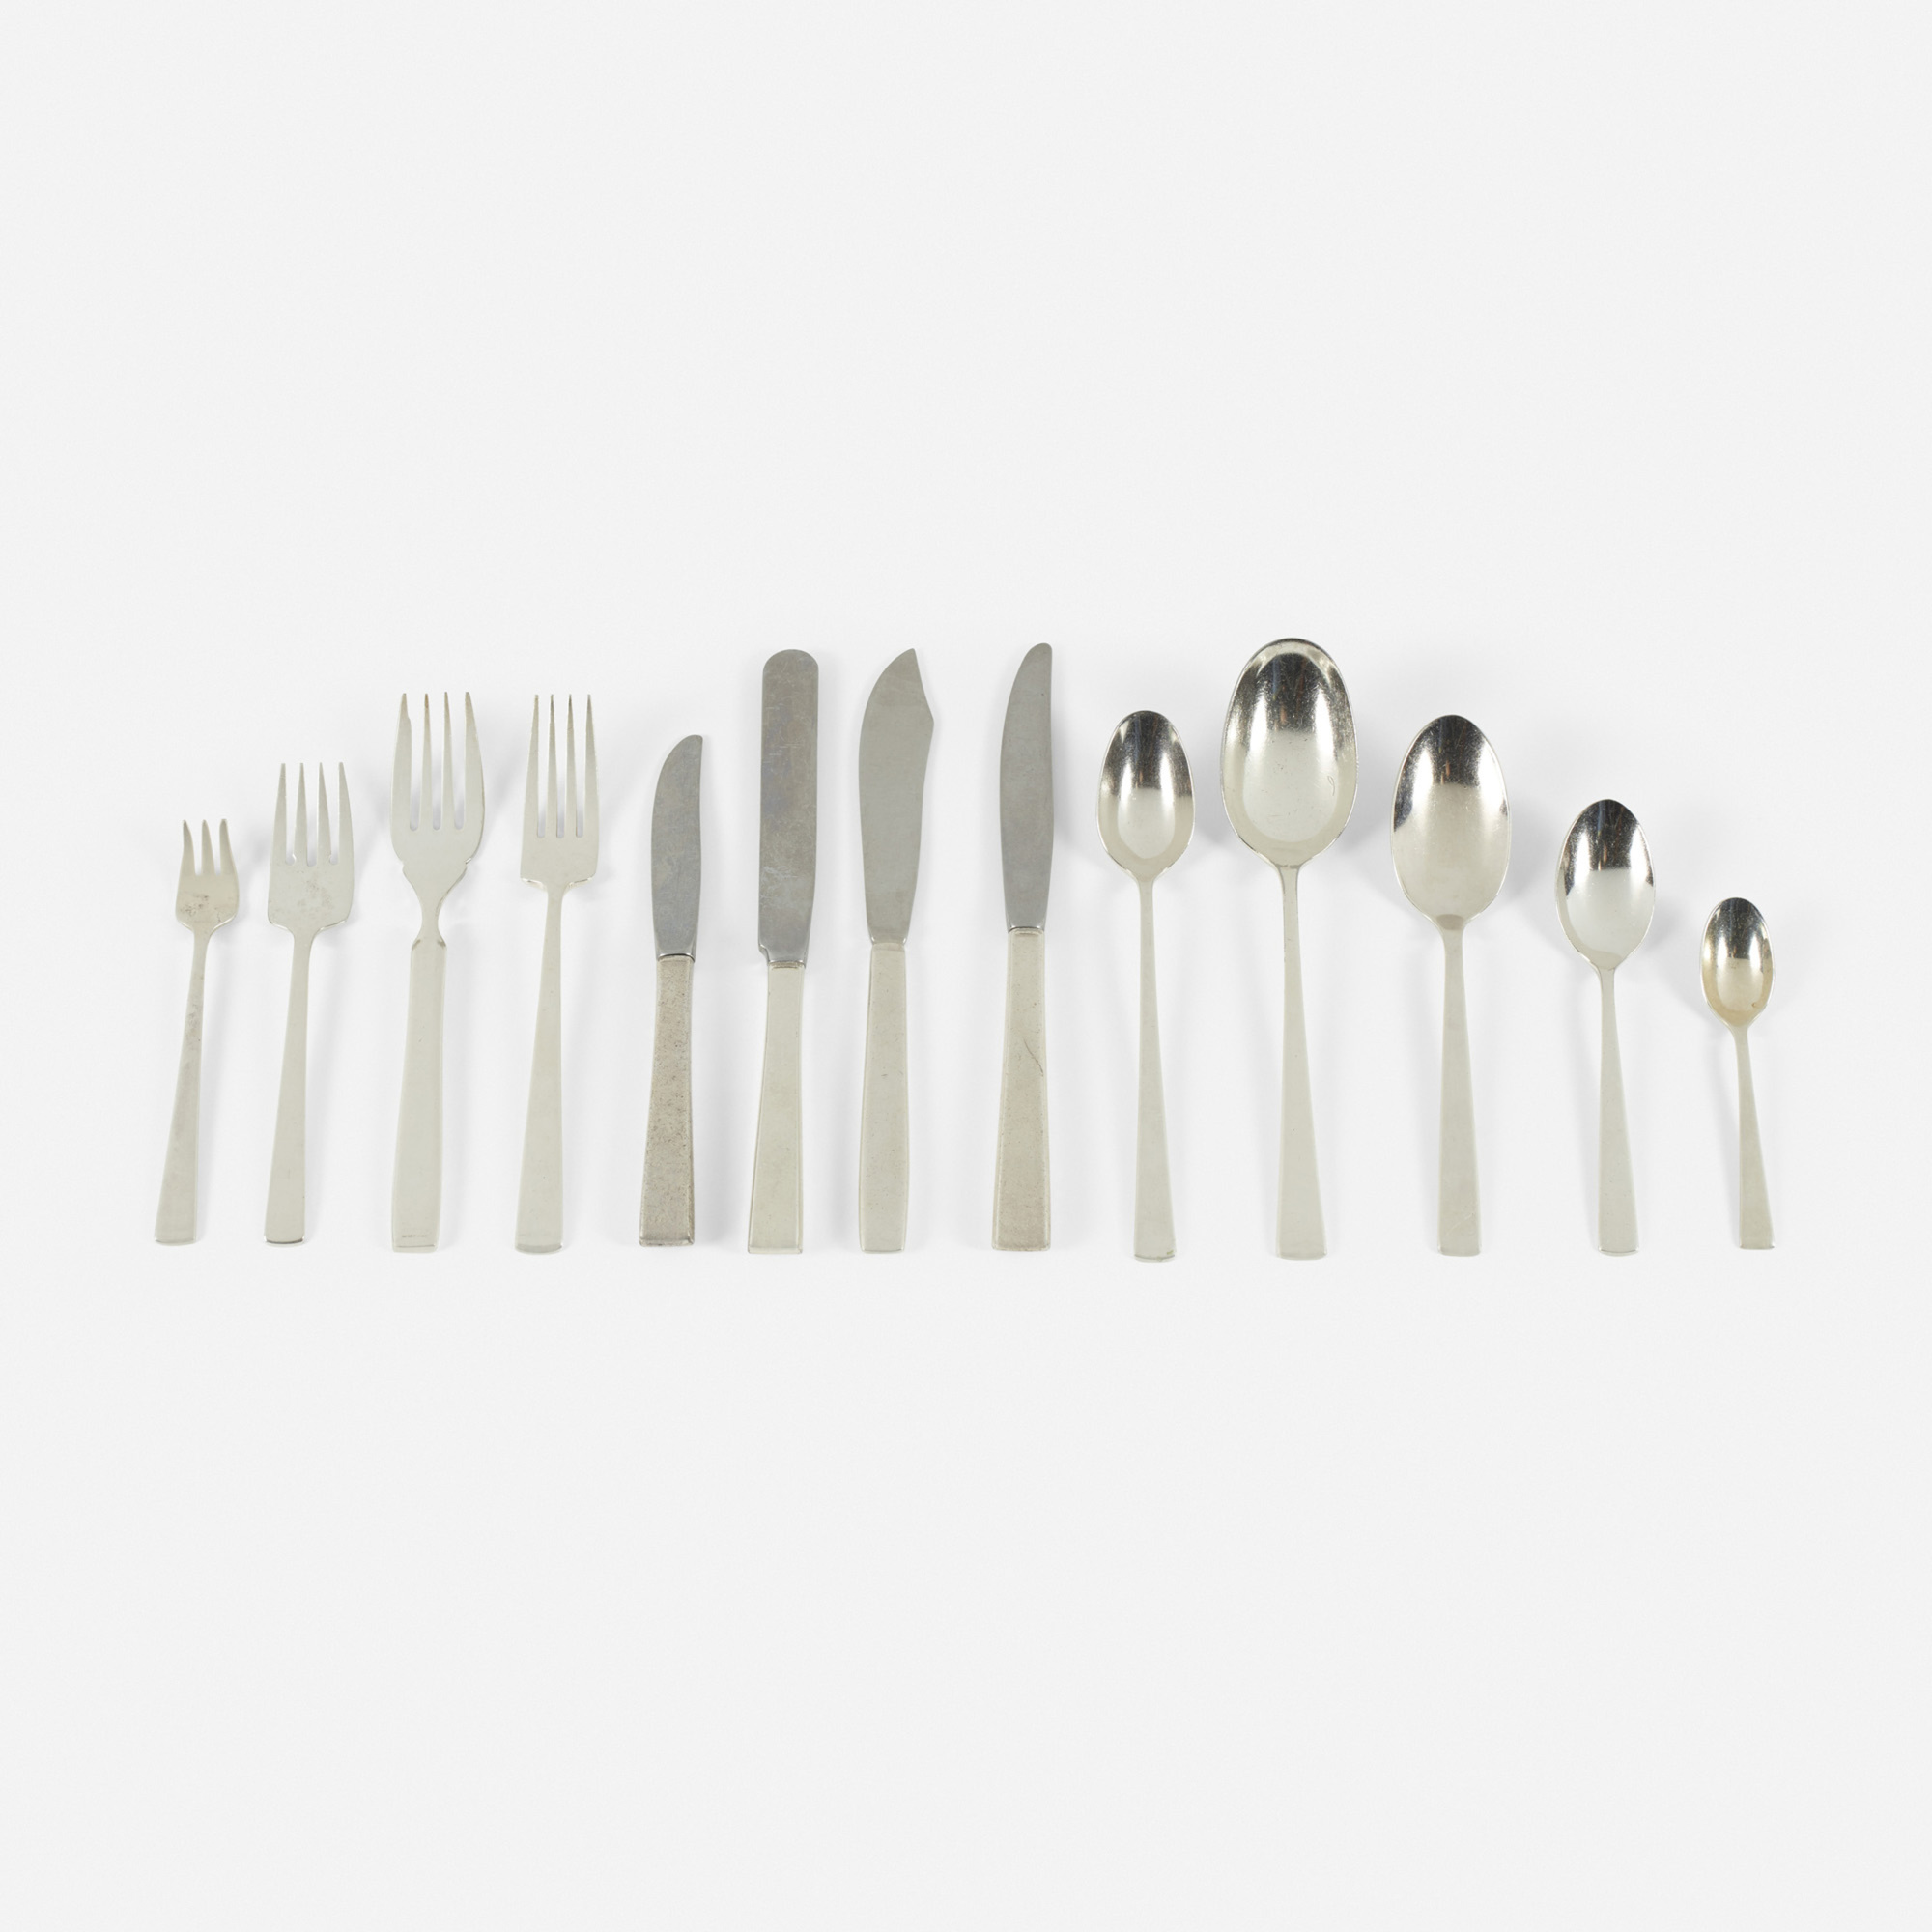 623: Garth and Ada Louise Huxtable / Four Seasons flatware, service for twelve (1 of 1)